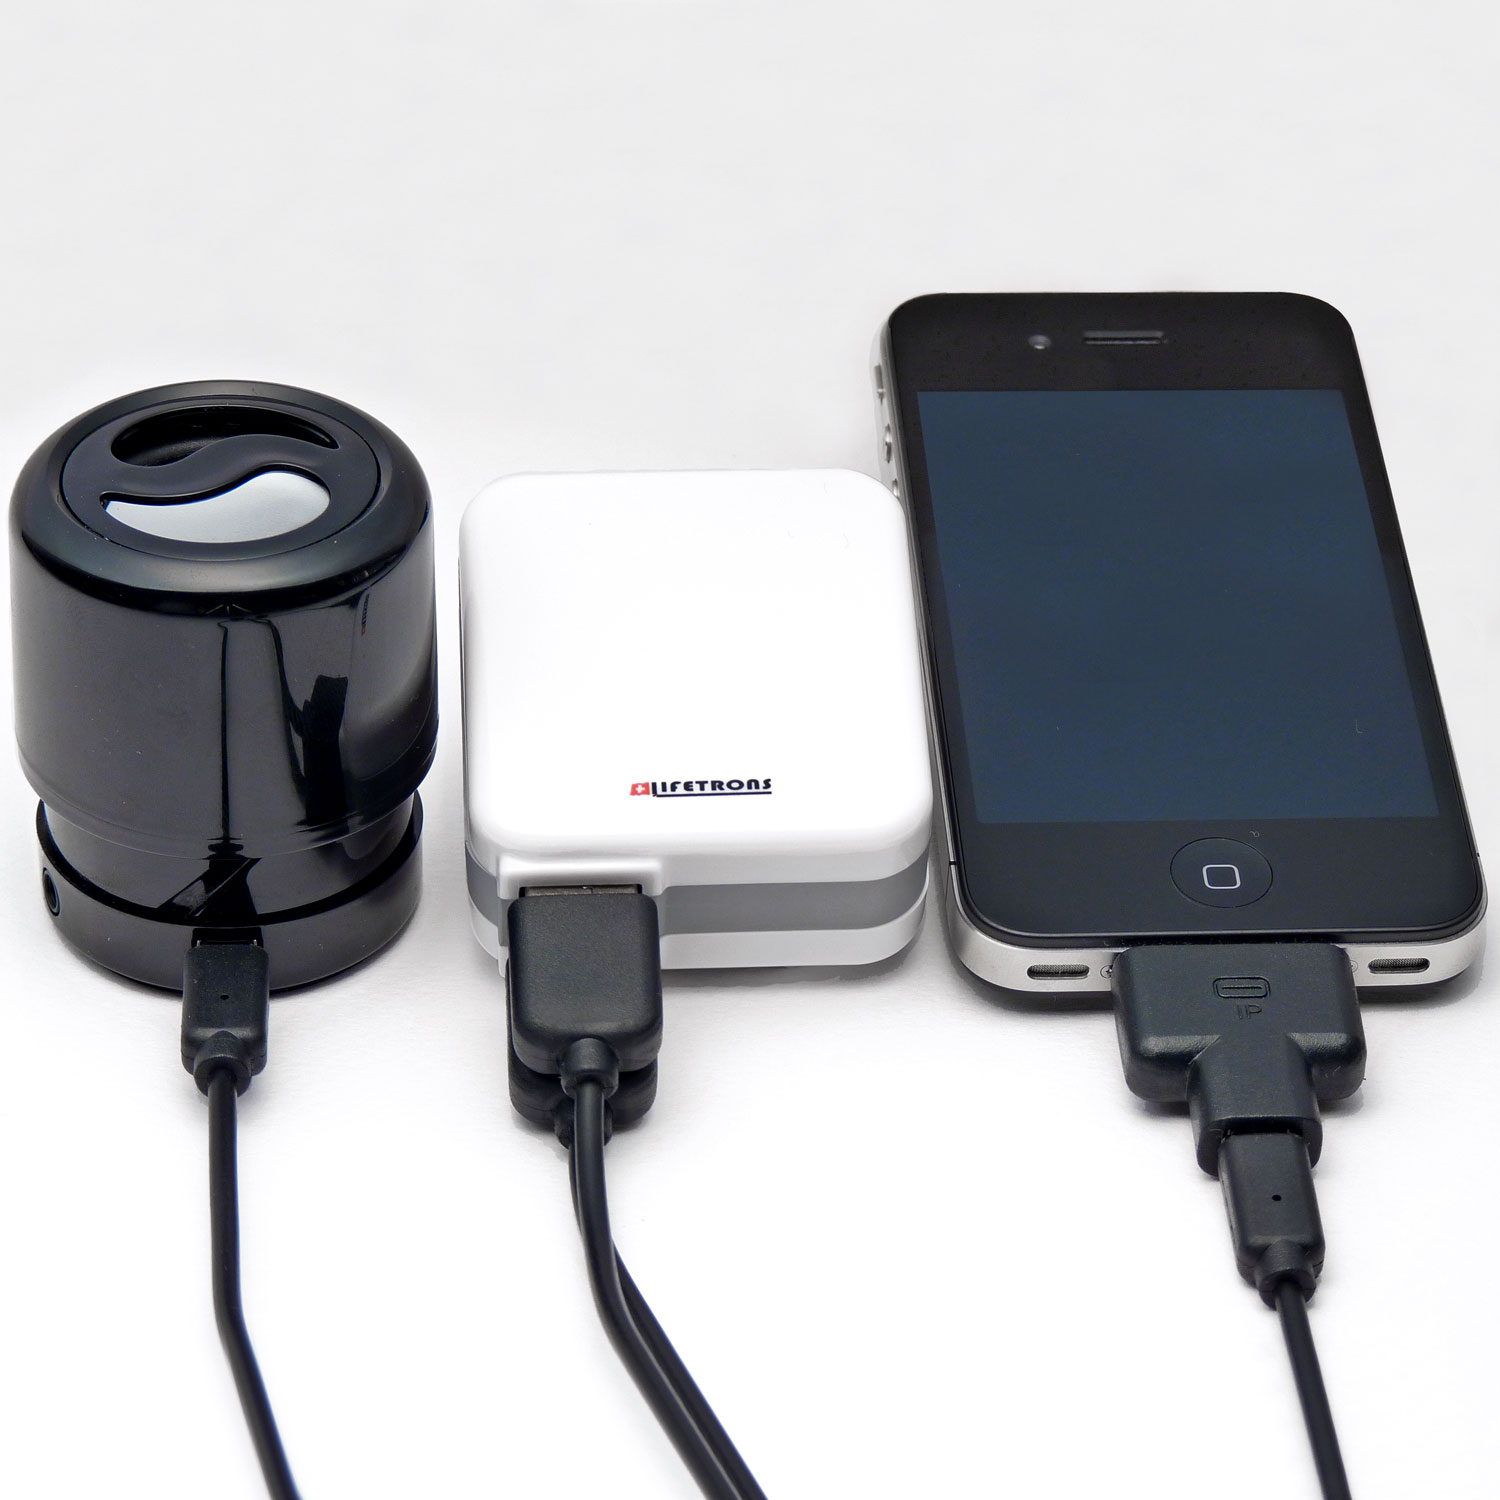 Lifetrons Worldwide Power Adapter 2 Usb Ports Fast Charge